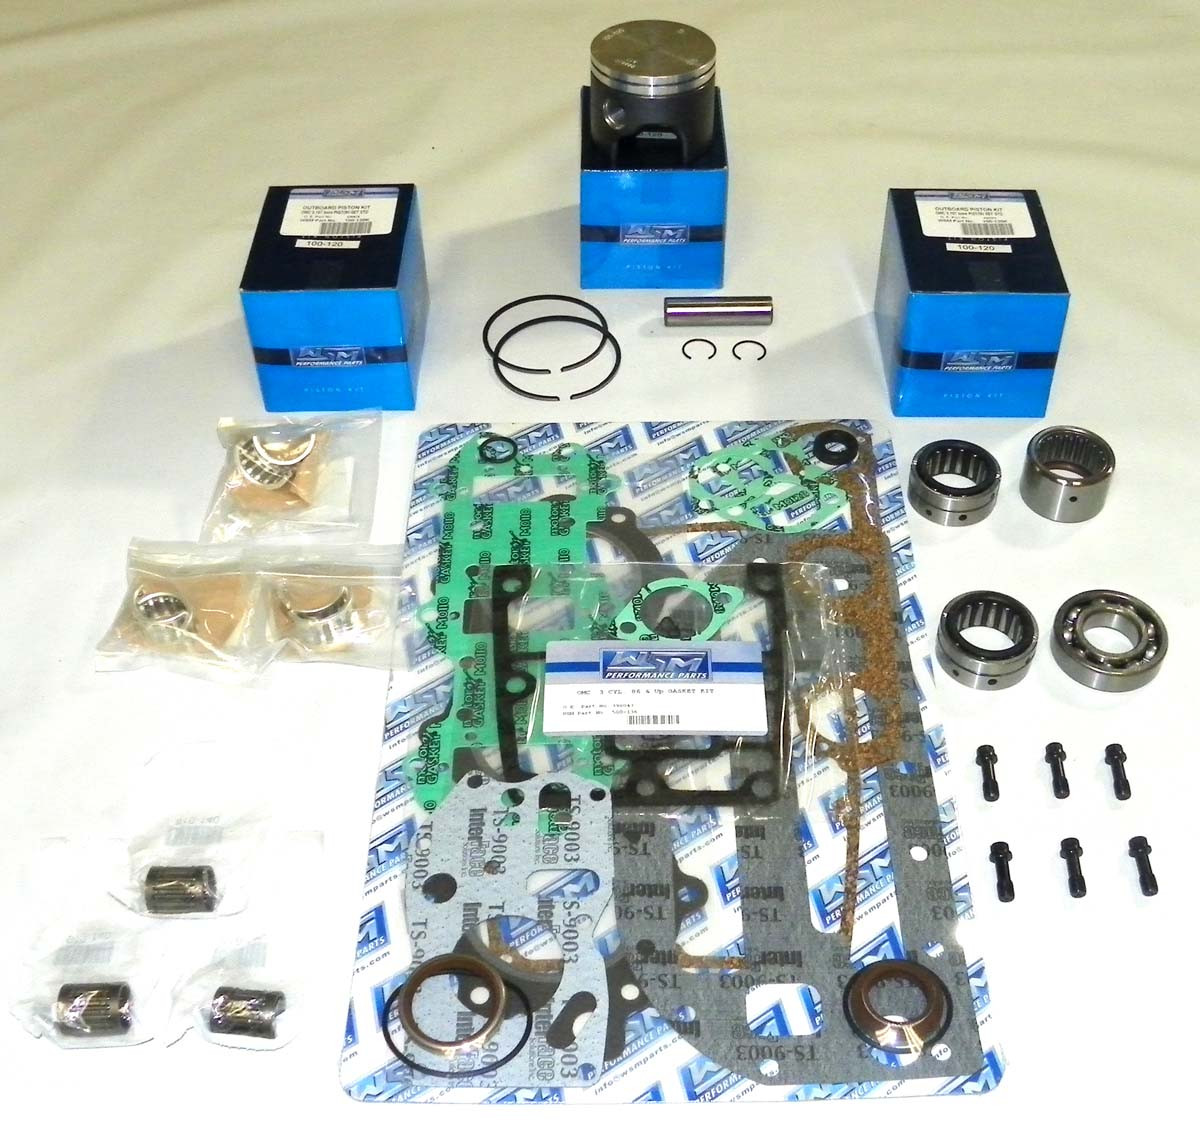 New Johnson/Evinrude 50/60/70 HP 3-CYL Powerhead [1989 and